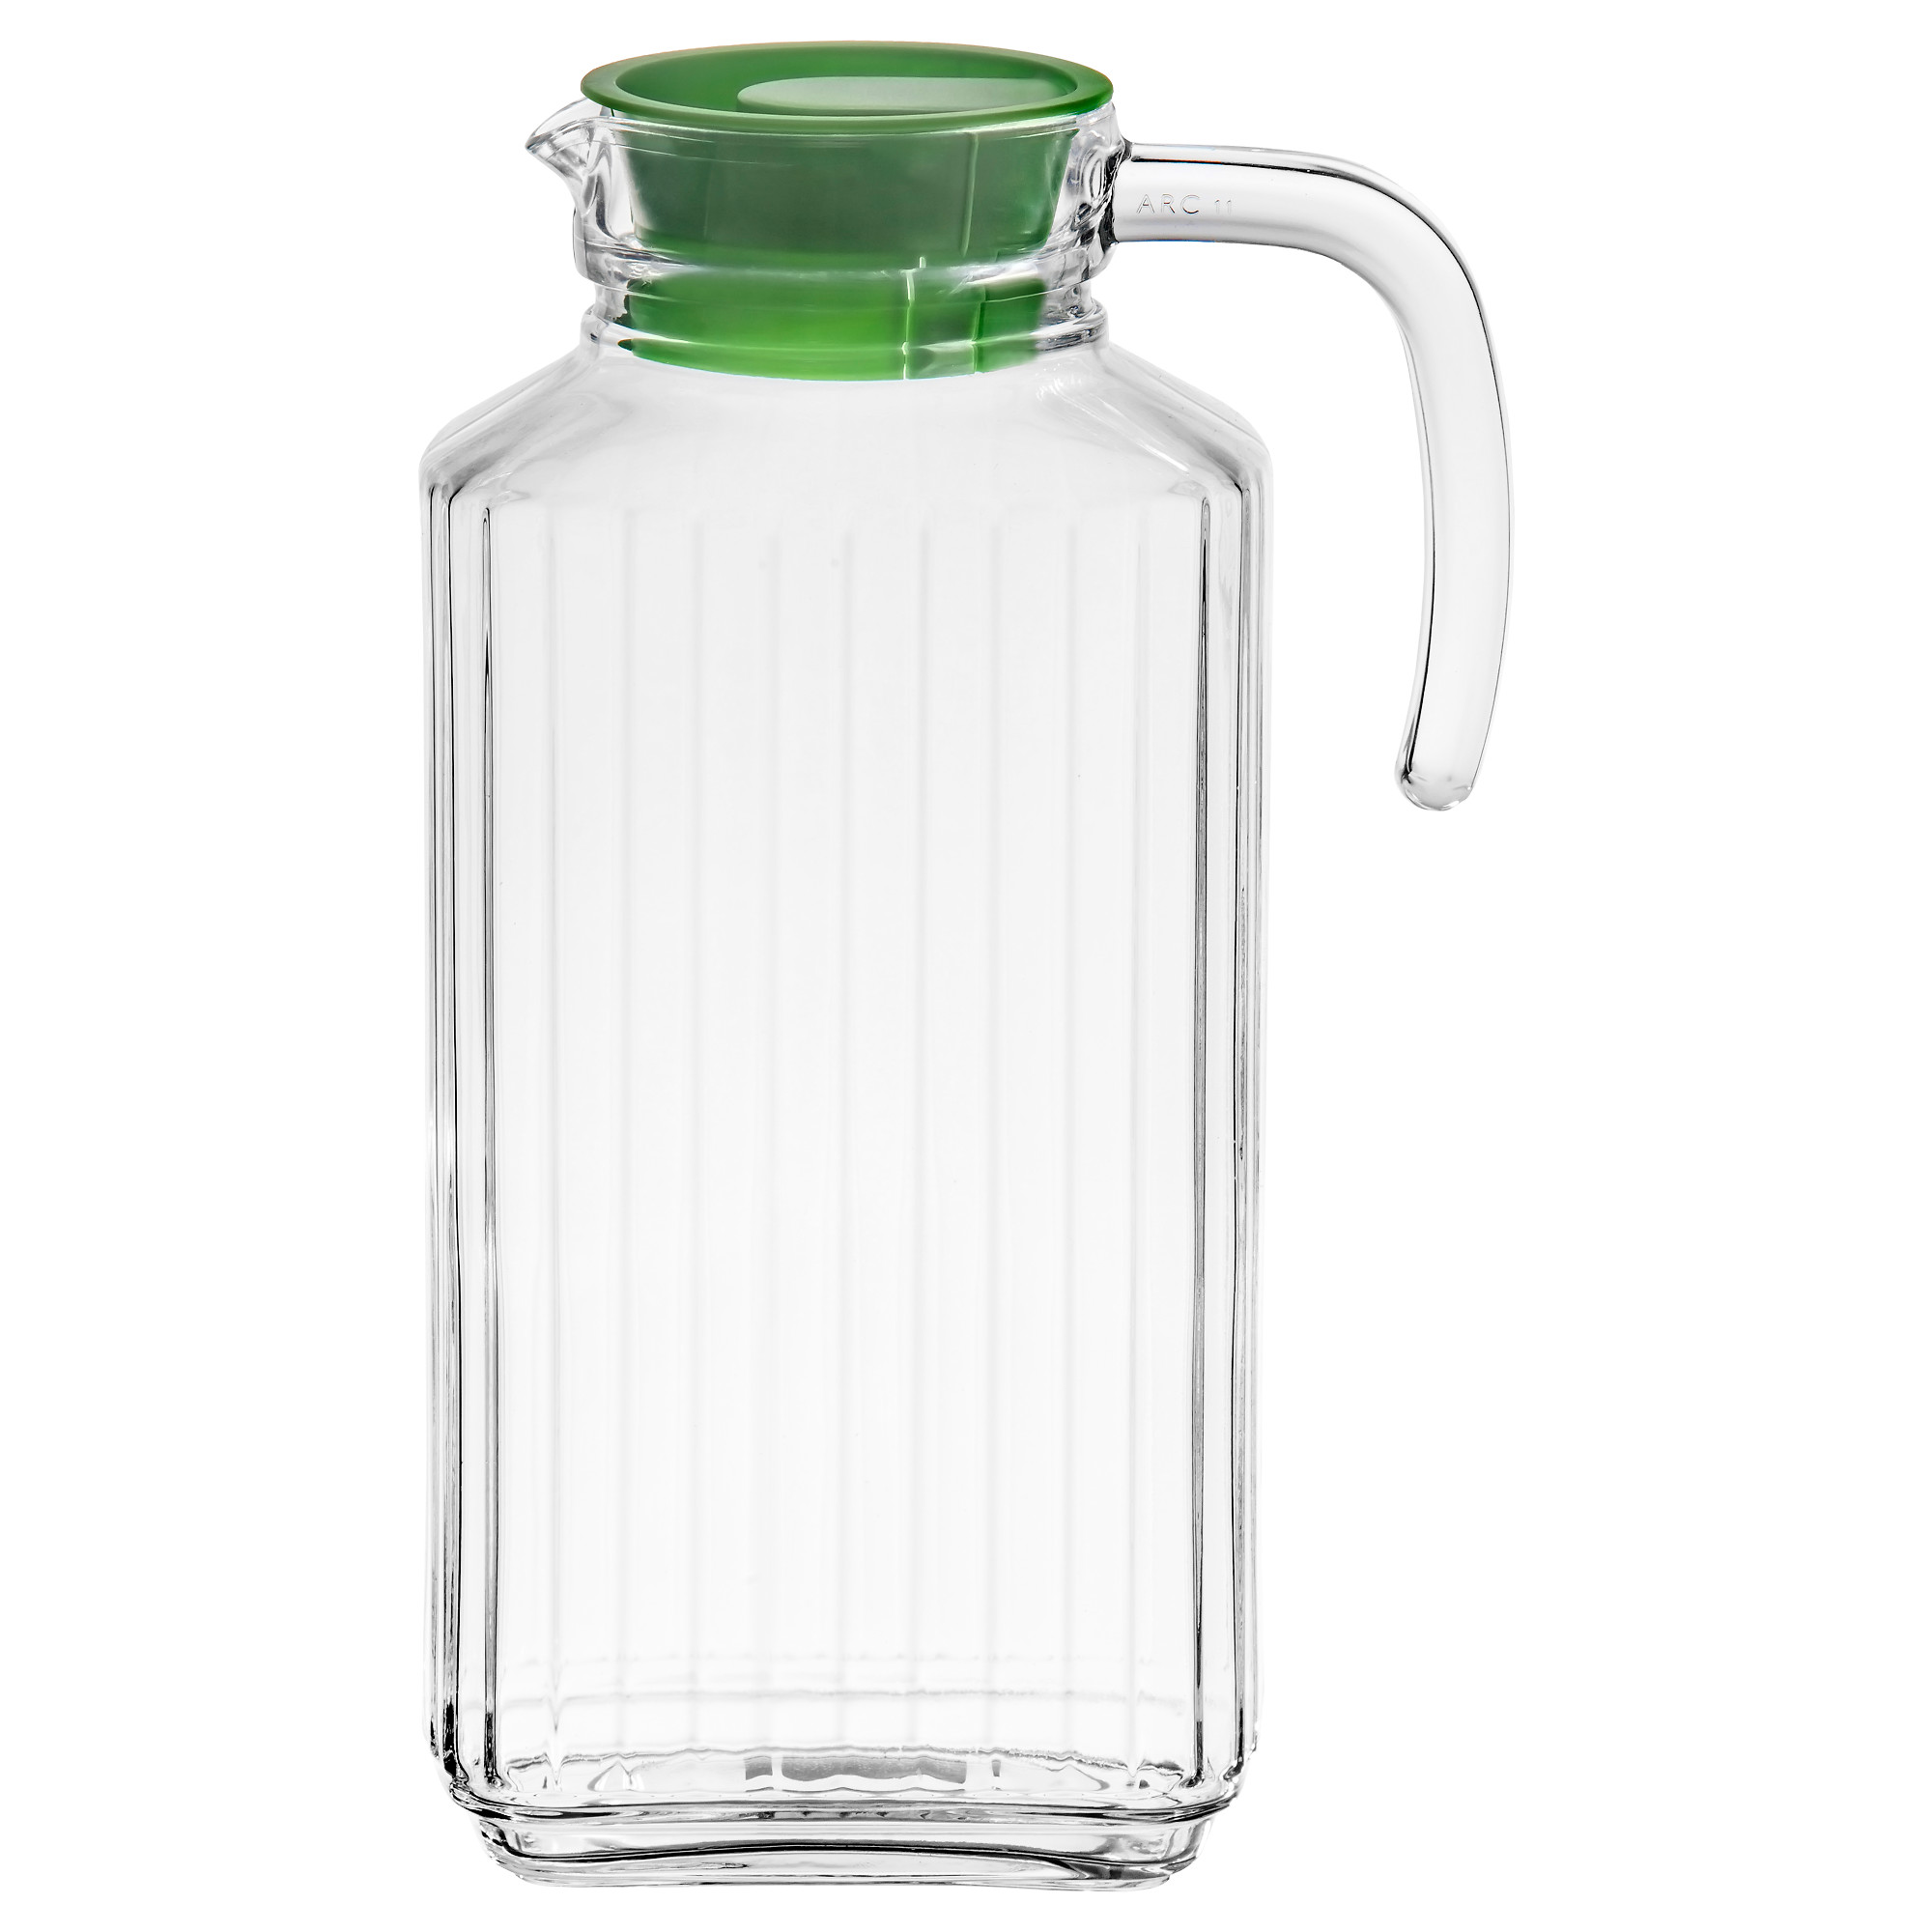 carafes pitchers beverage  water dispensers  ikea - farlig pitcher with lid clear glass volume  oz volume